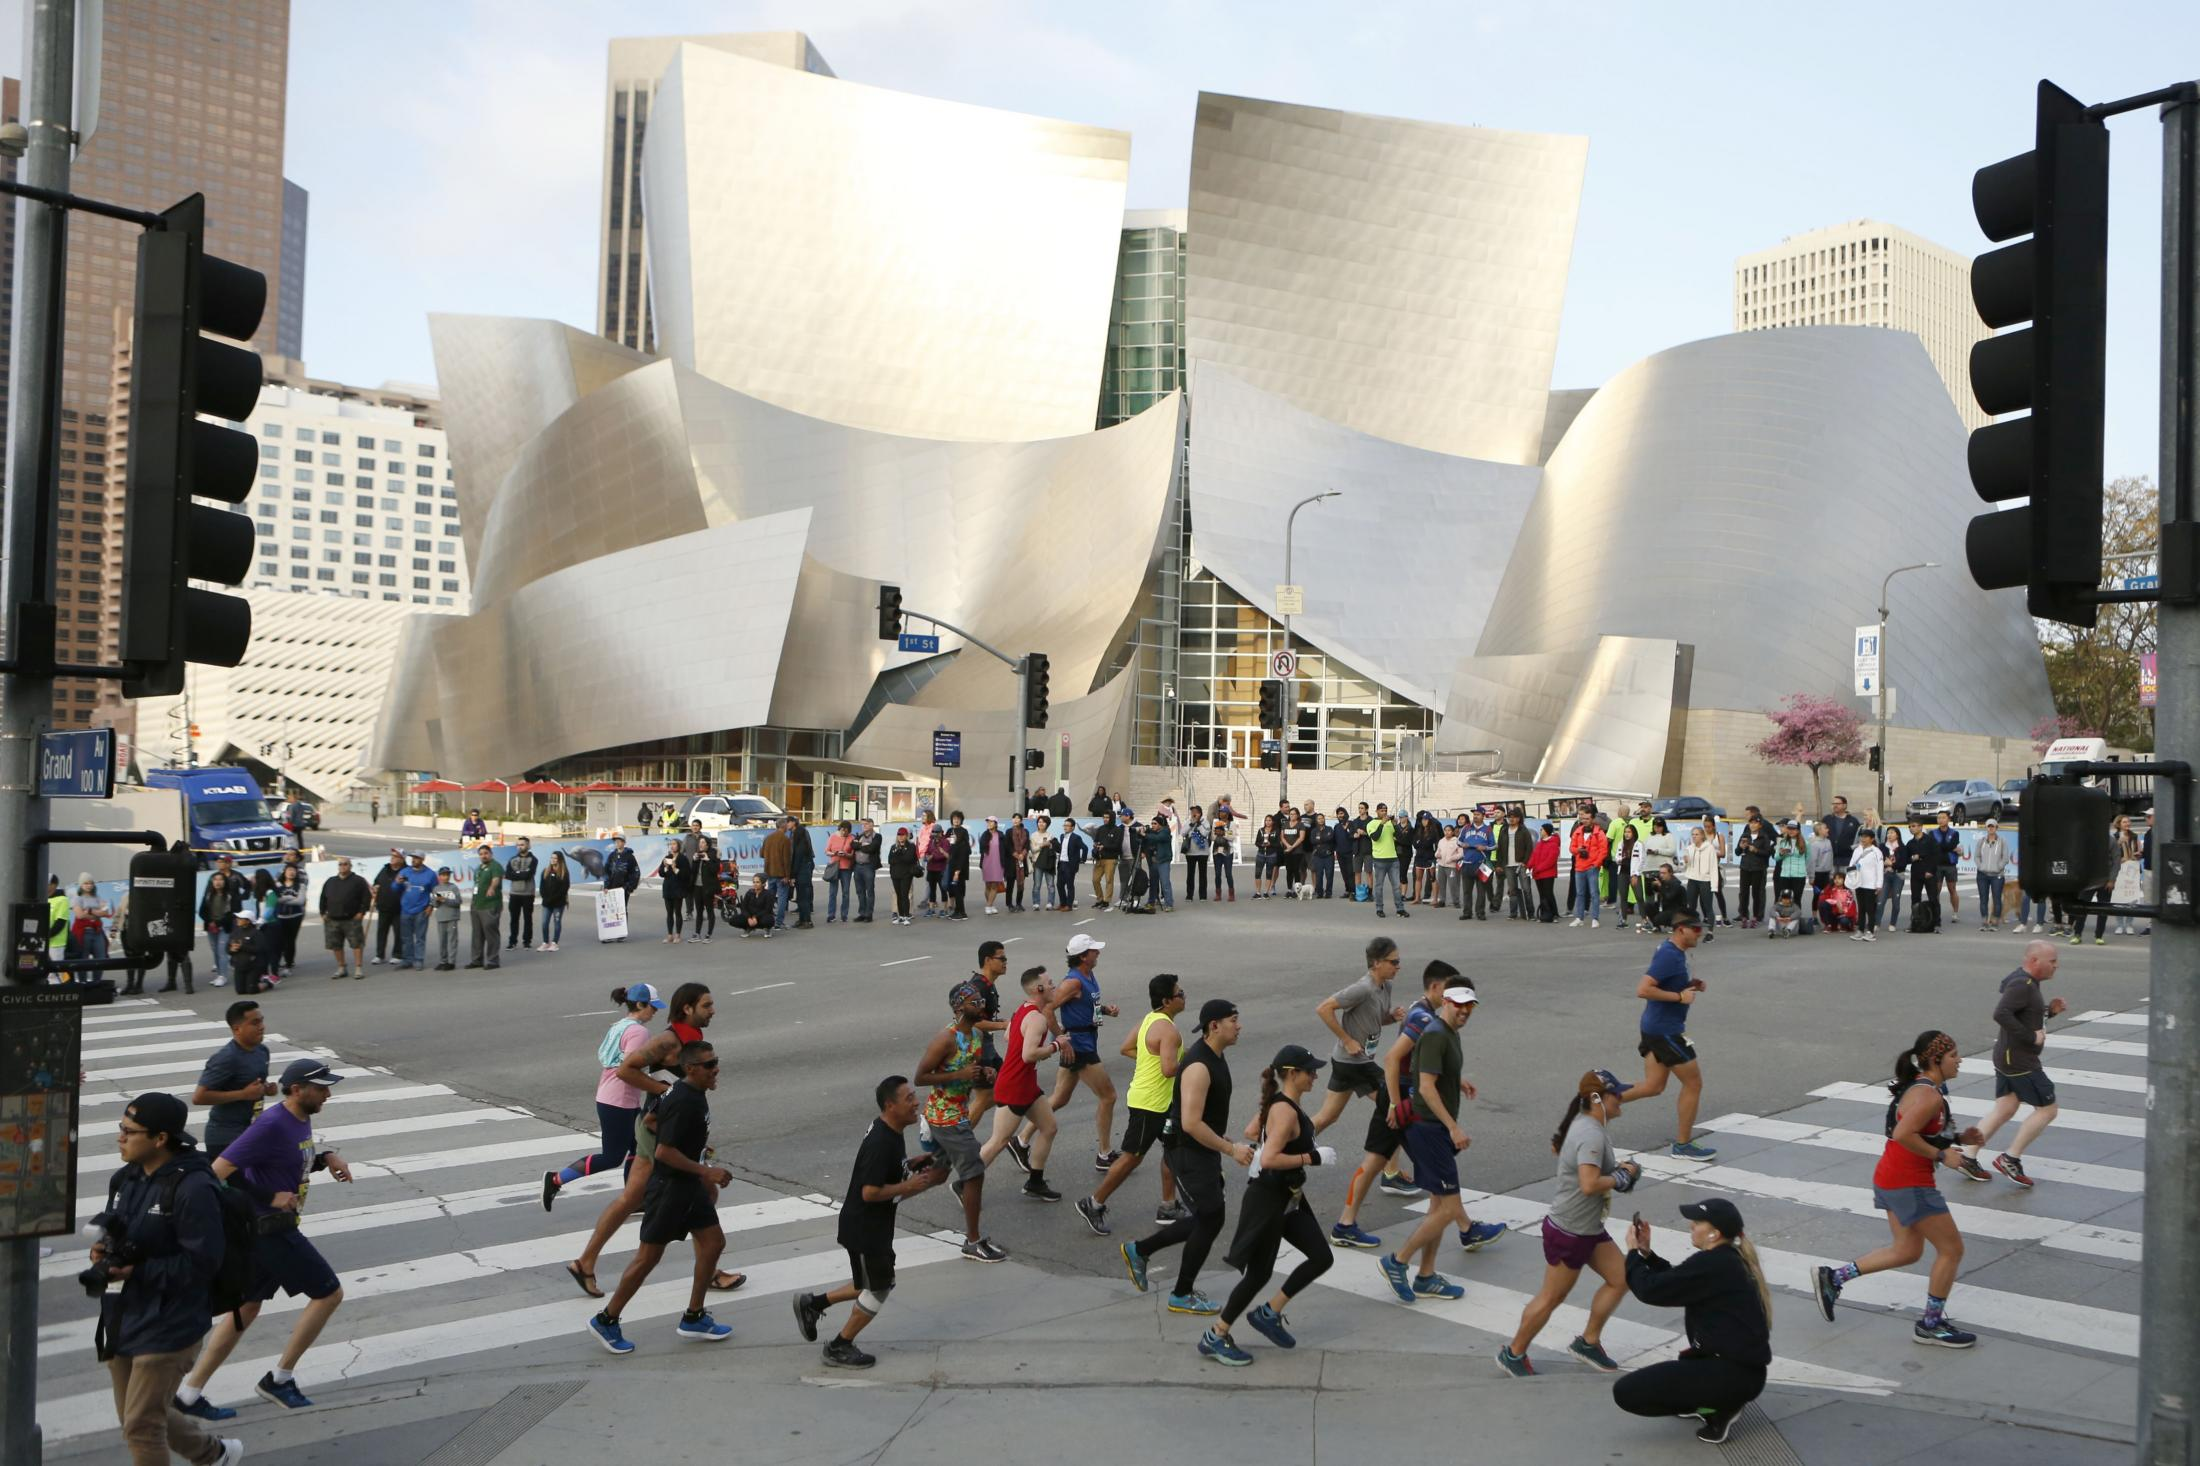 LOS ANGELES, CALIFORNIA - MARCH 24:   Runners run by the Walt Disney Concert Hall during the 2019 Skechers Performance Los Angeles Marathon on March 24, 2019 in Los Angeles, California. (Photo by Katharine Lotze/Getty Images)